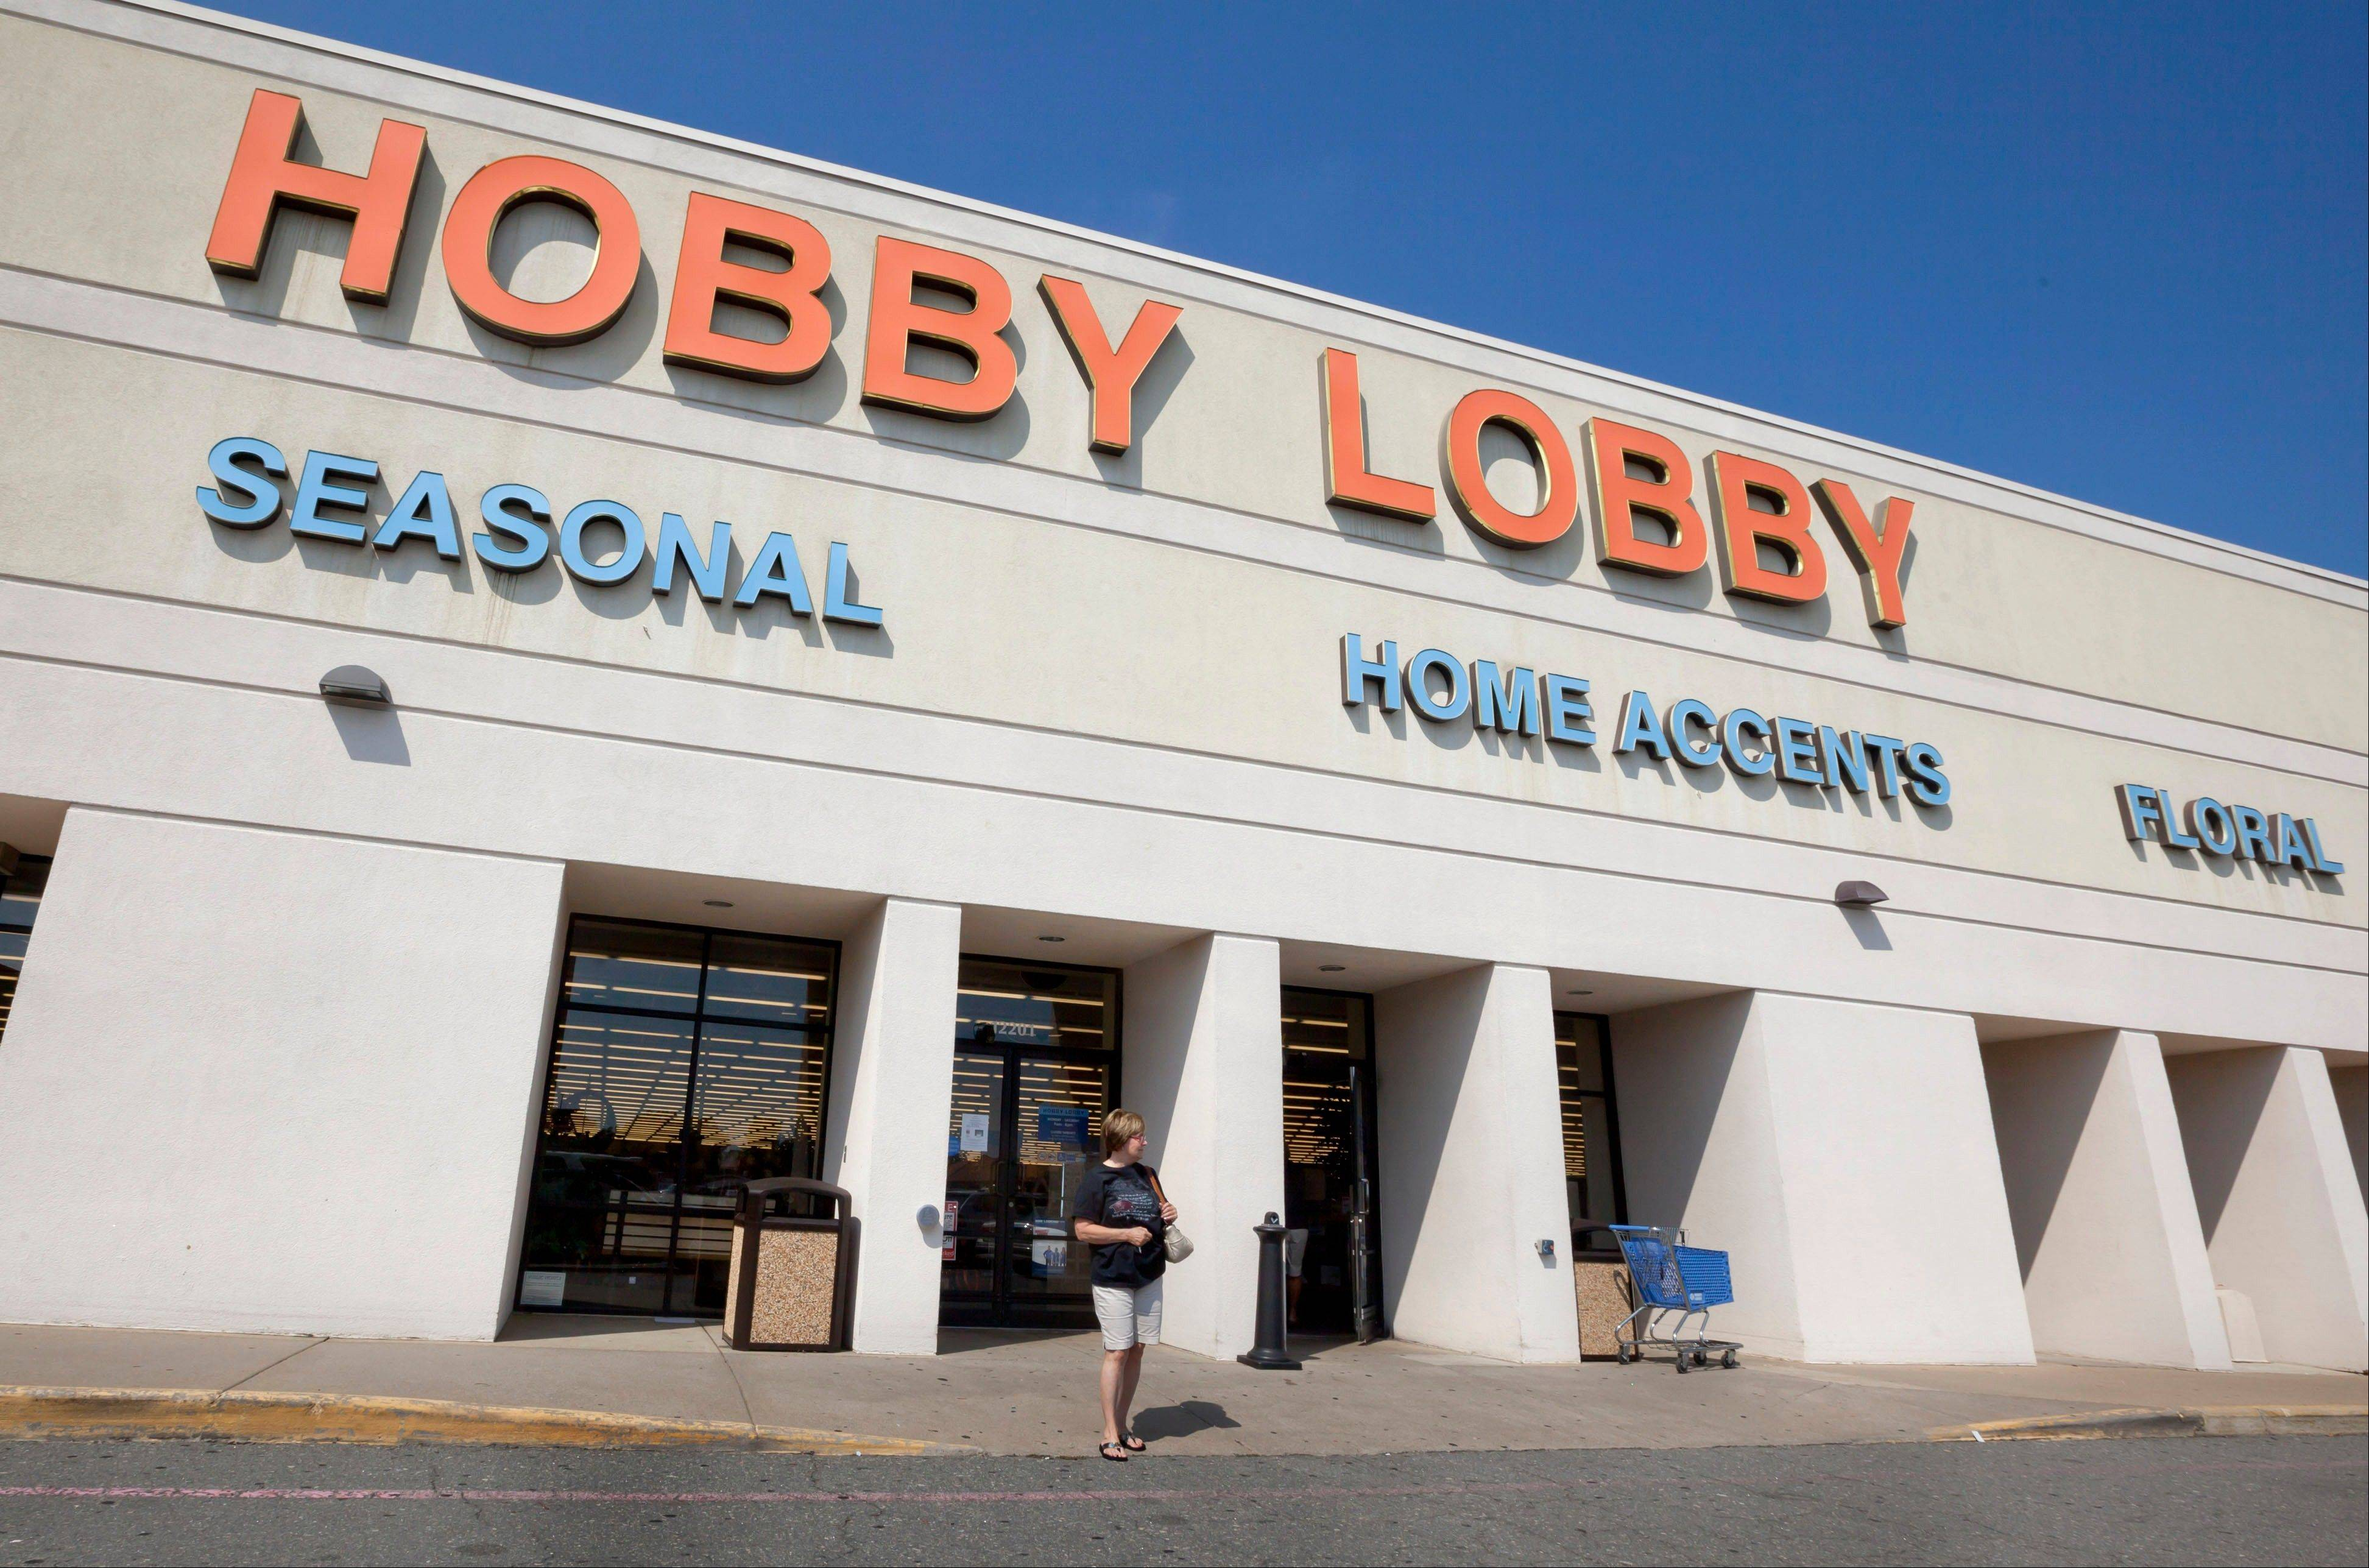 A woman walks from a Hobby Lobby Inc., store in Little Rock, Ark., Wednesday, Sept. 12, 2012. The Oklahoma City-based chain filed a federal lawsuit Wednesday over a mandate in the health reform law that requires employers to provide coverage for the morning-after pill.